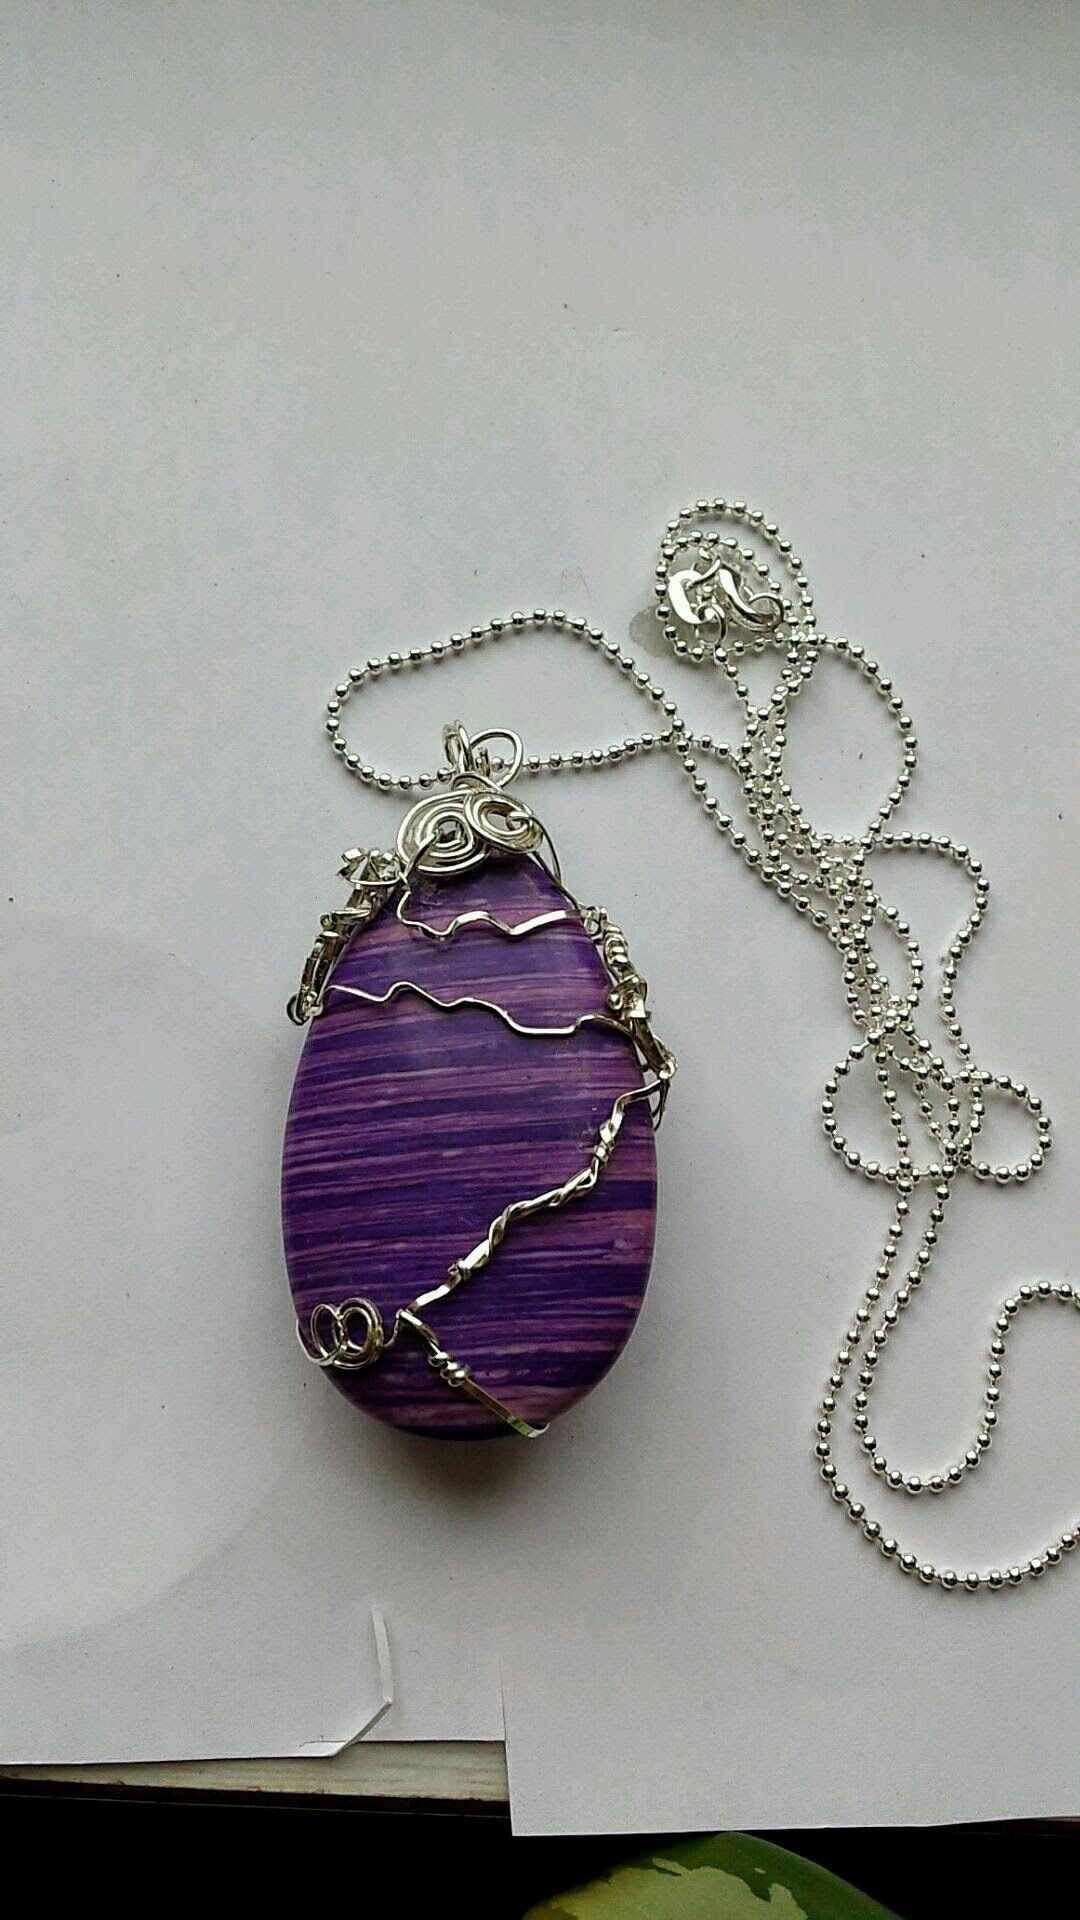 Pin by Carolyn Motley on My Wire Weave Jewelry   Pinterest   Wire ...